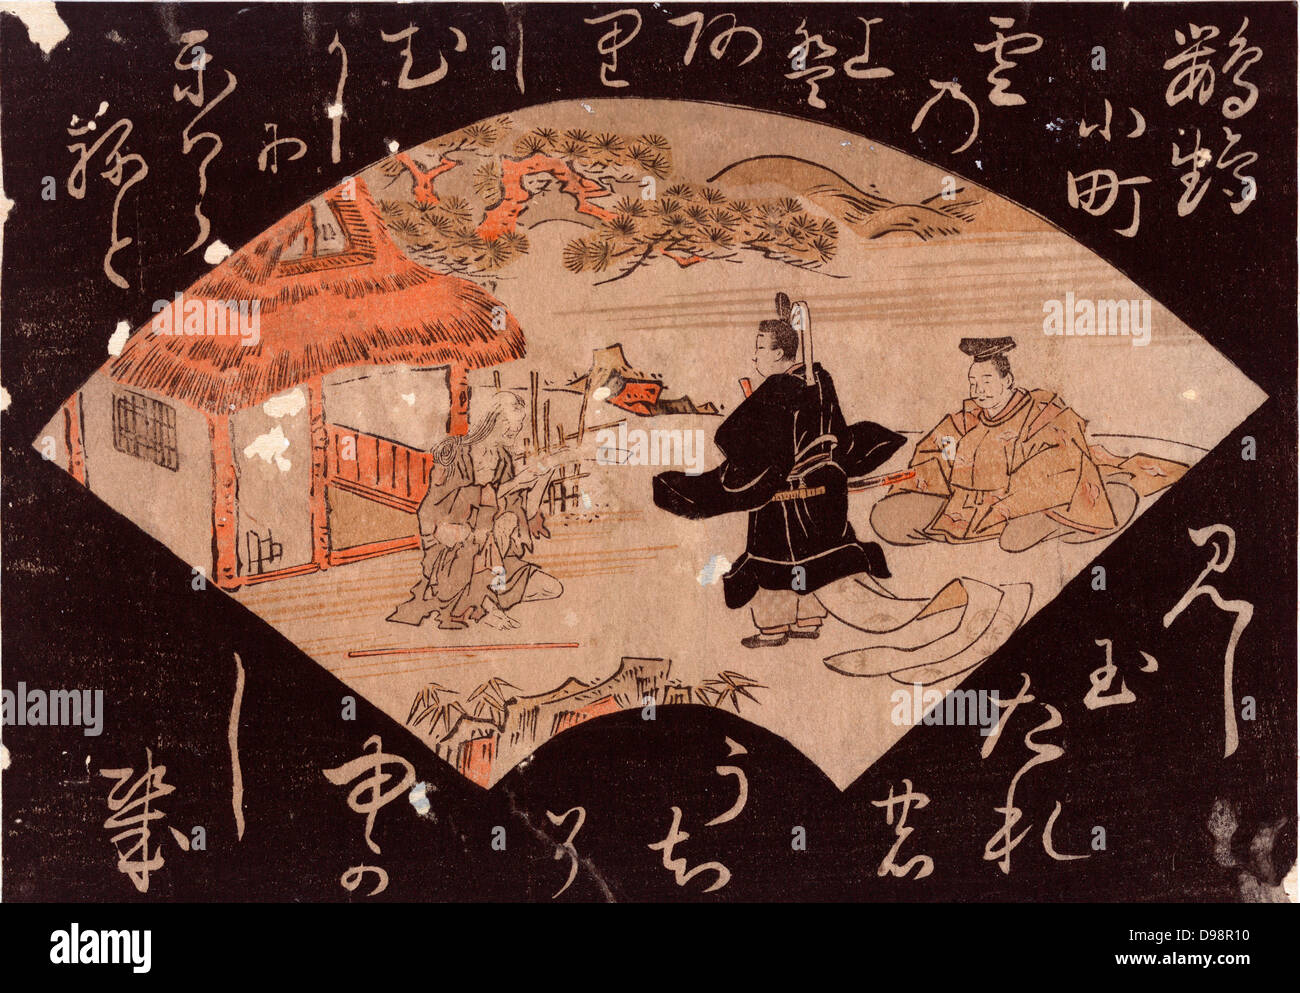 Fan-shaped image showing counsellor for Emperor Yo-zei (869-949) seated right, delivering poem to poetess Ono Komachi Stock Photo